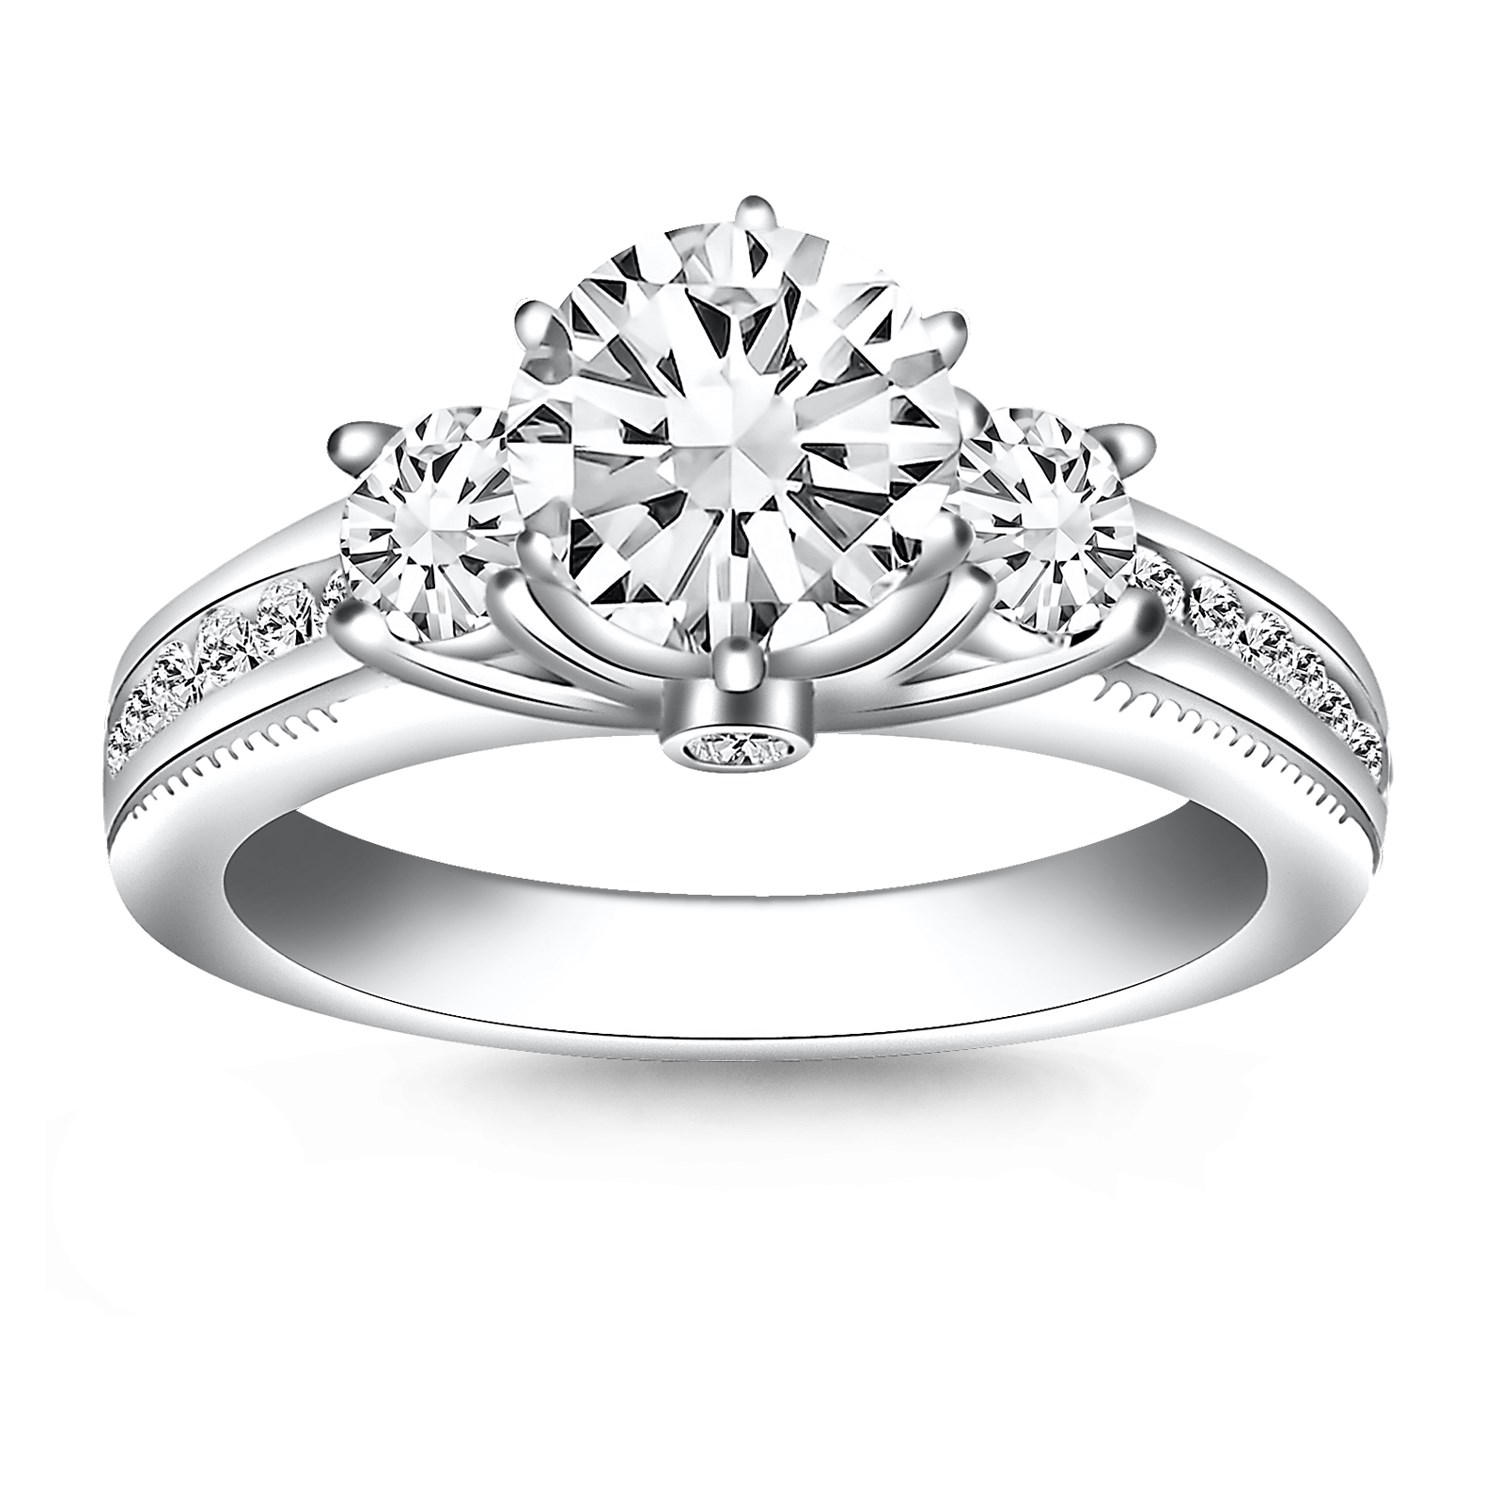 Multi Diamond Engagement Ring Mounting In 14K White Gold